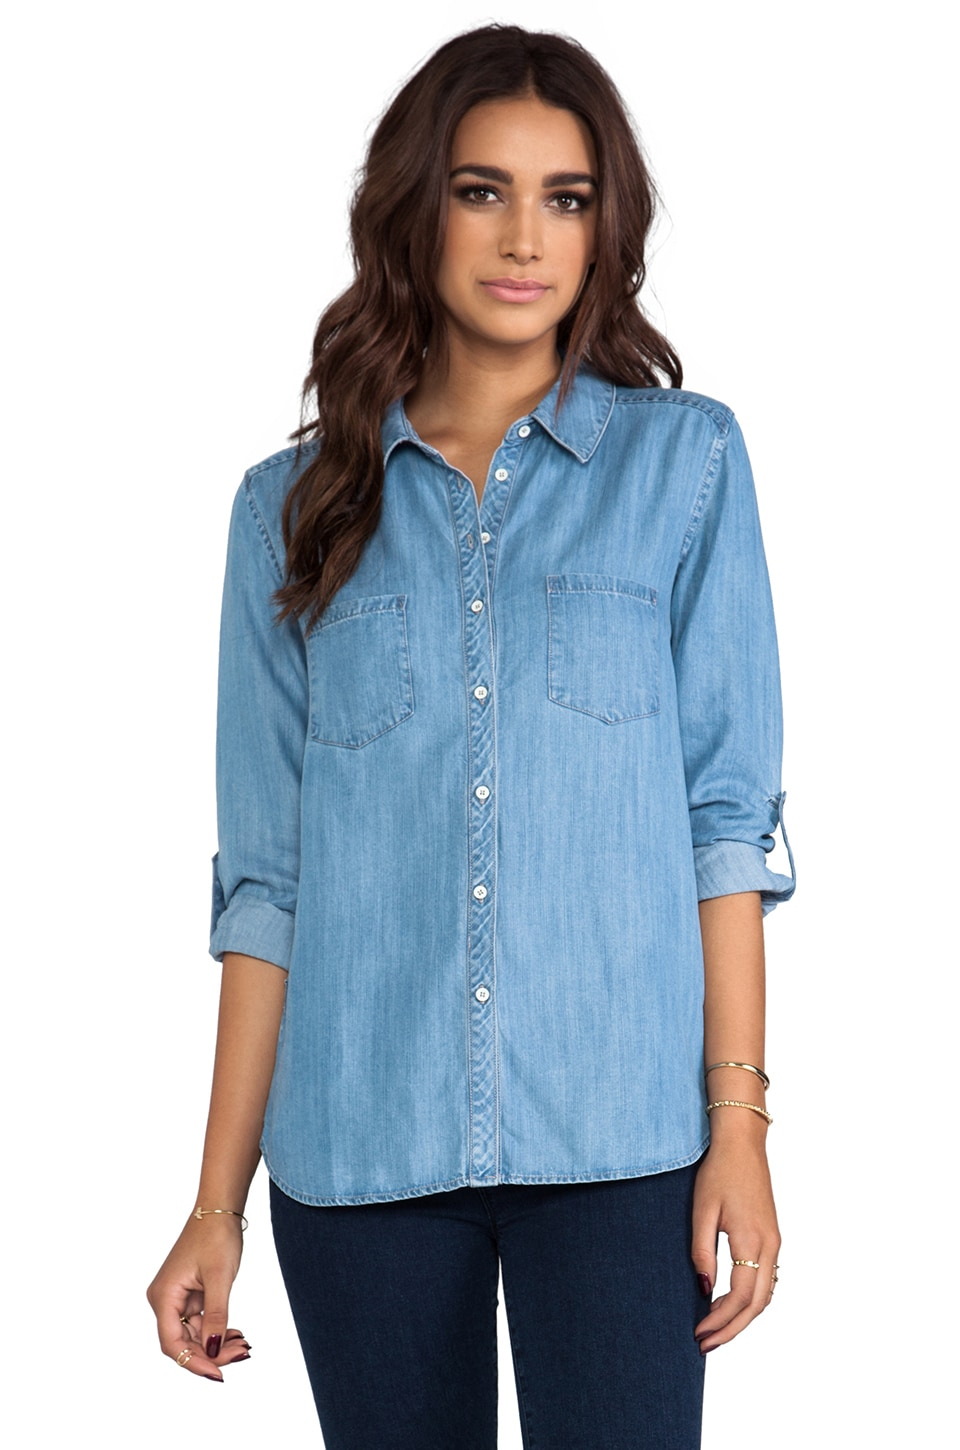 C&C California Textured Chambray Two Pocket Shirt in Chambray Multi